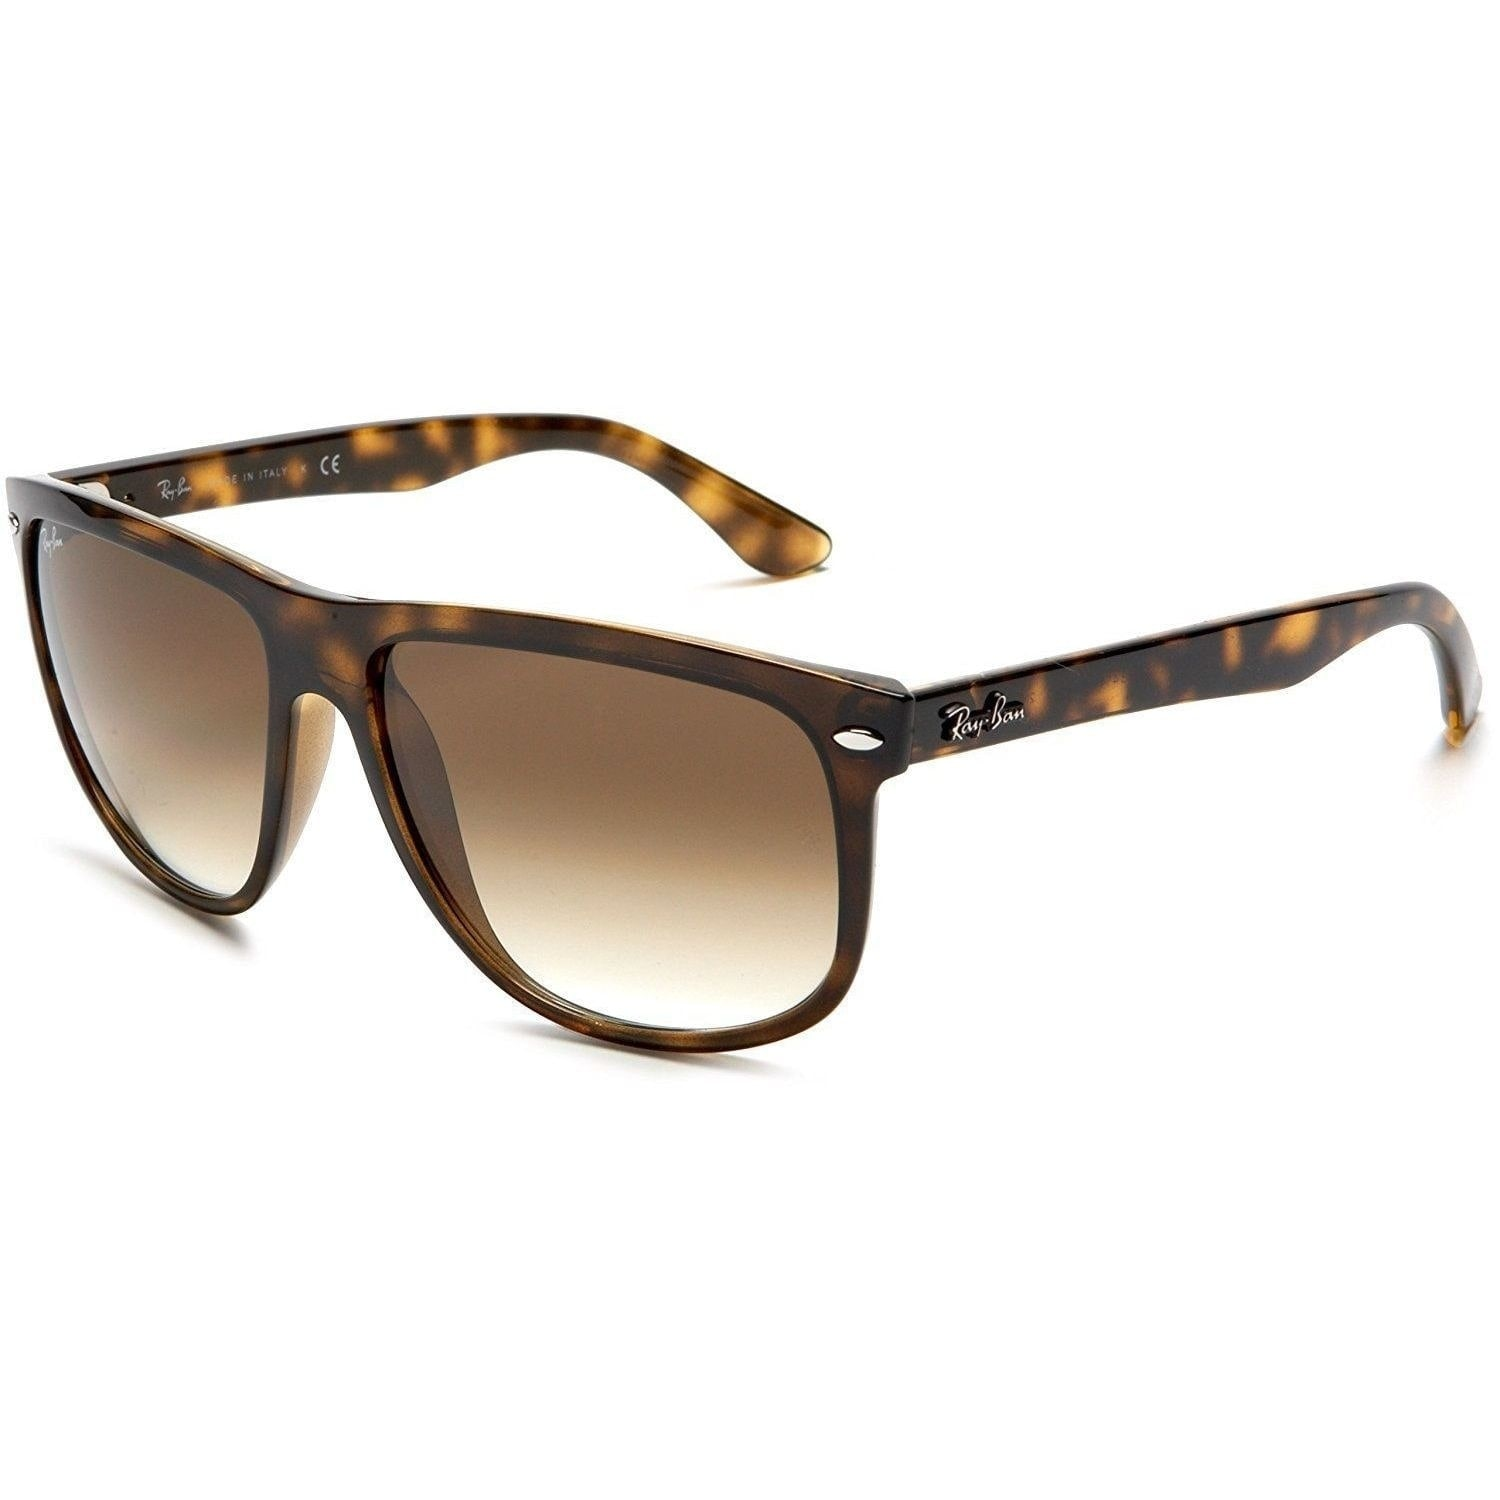 dd1dbbf8758 Shop Ray-Ban RB4147 710 51 Men s Tortoise Frame Light Brown Gradient 56mm Lens  Sunglasses - Free Shipping Today - Overstock - 15288129